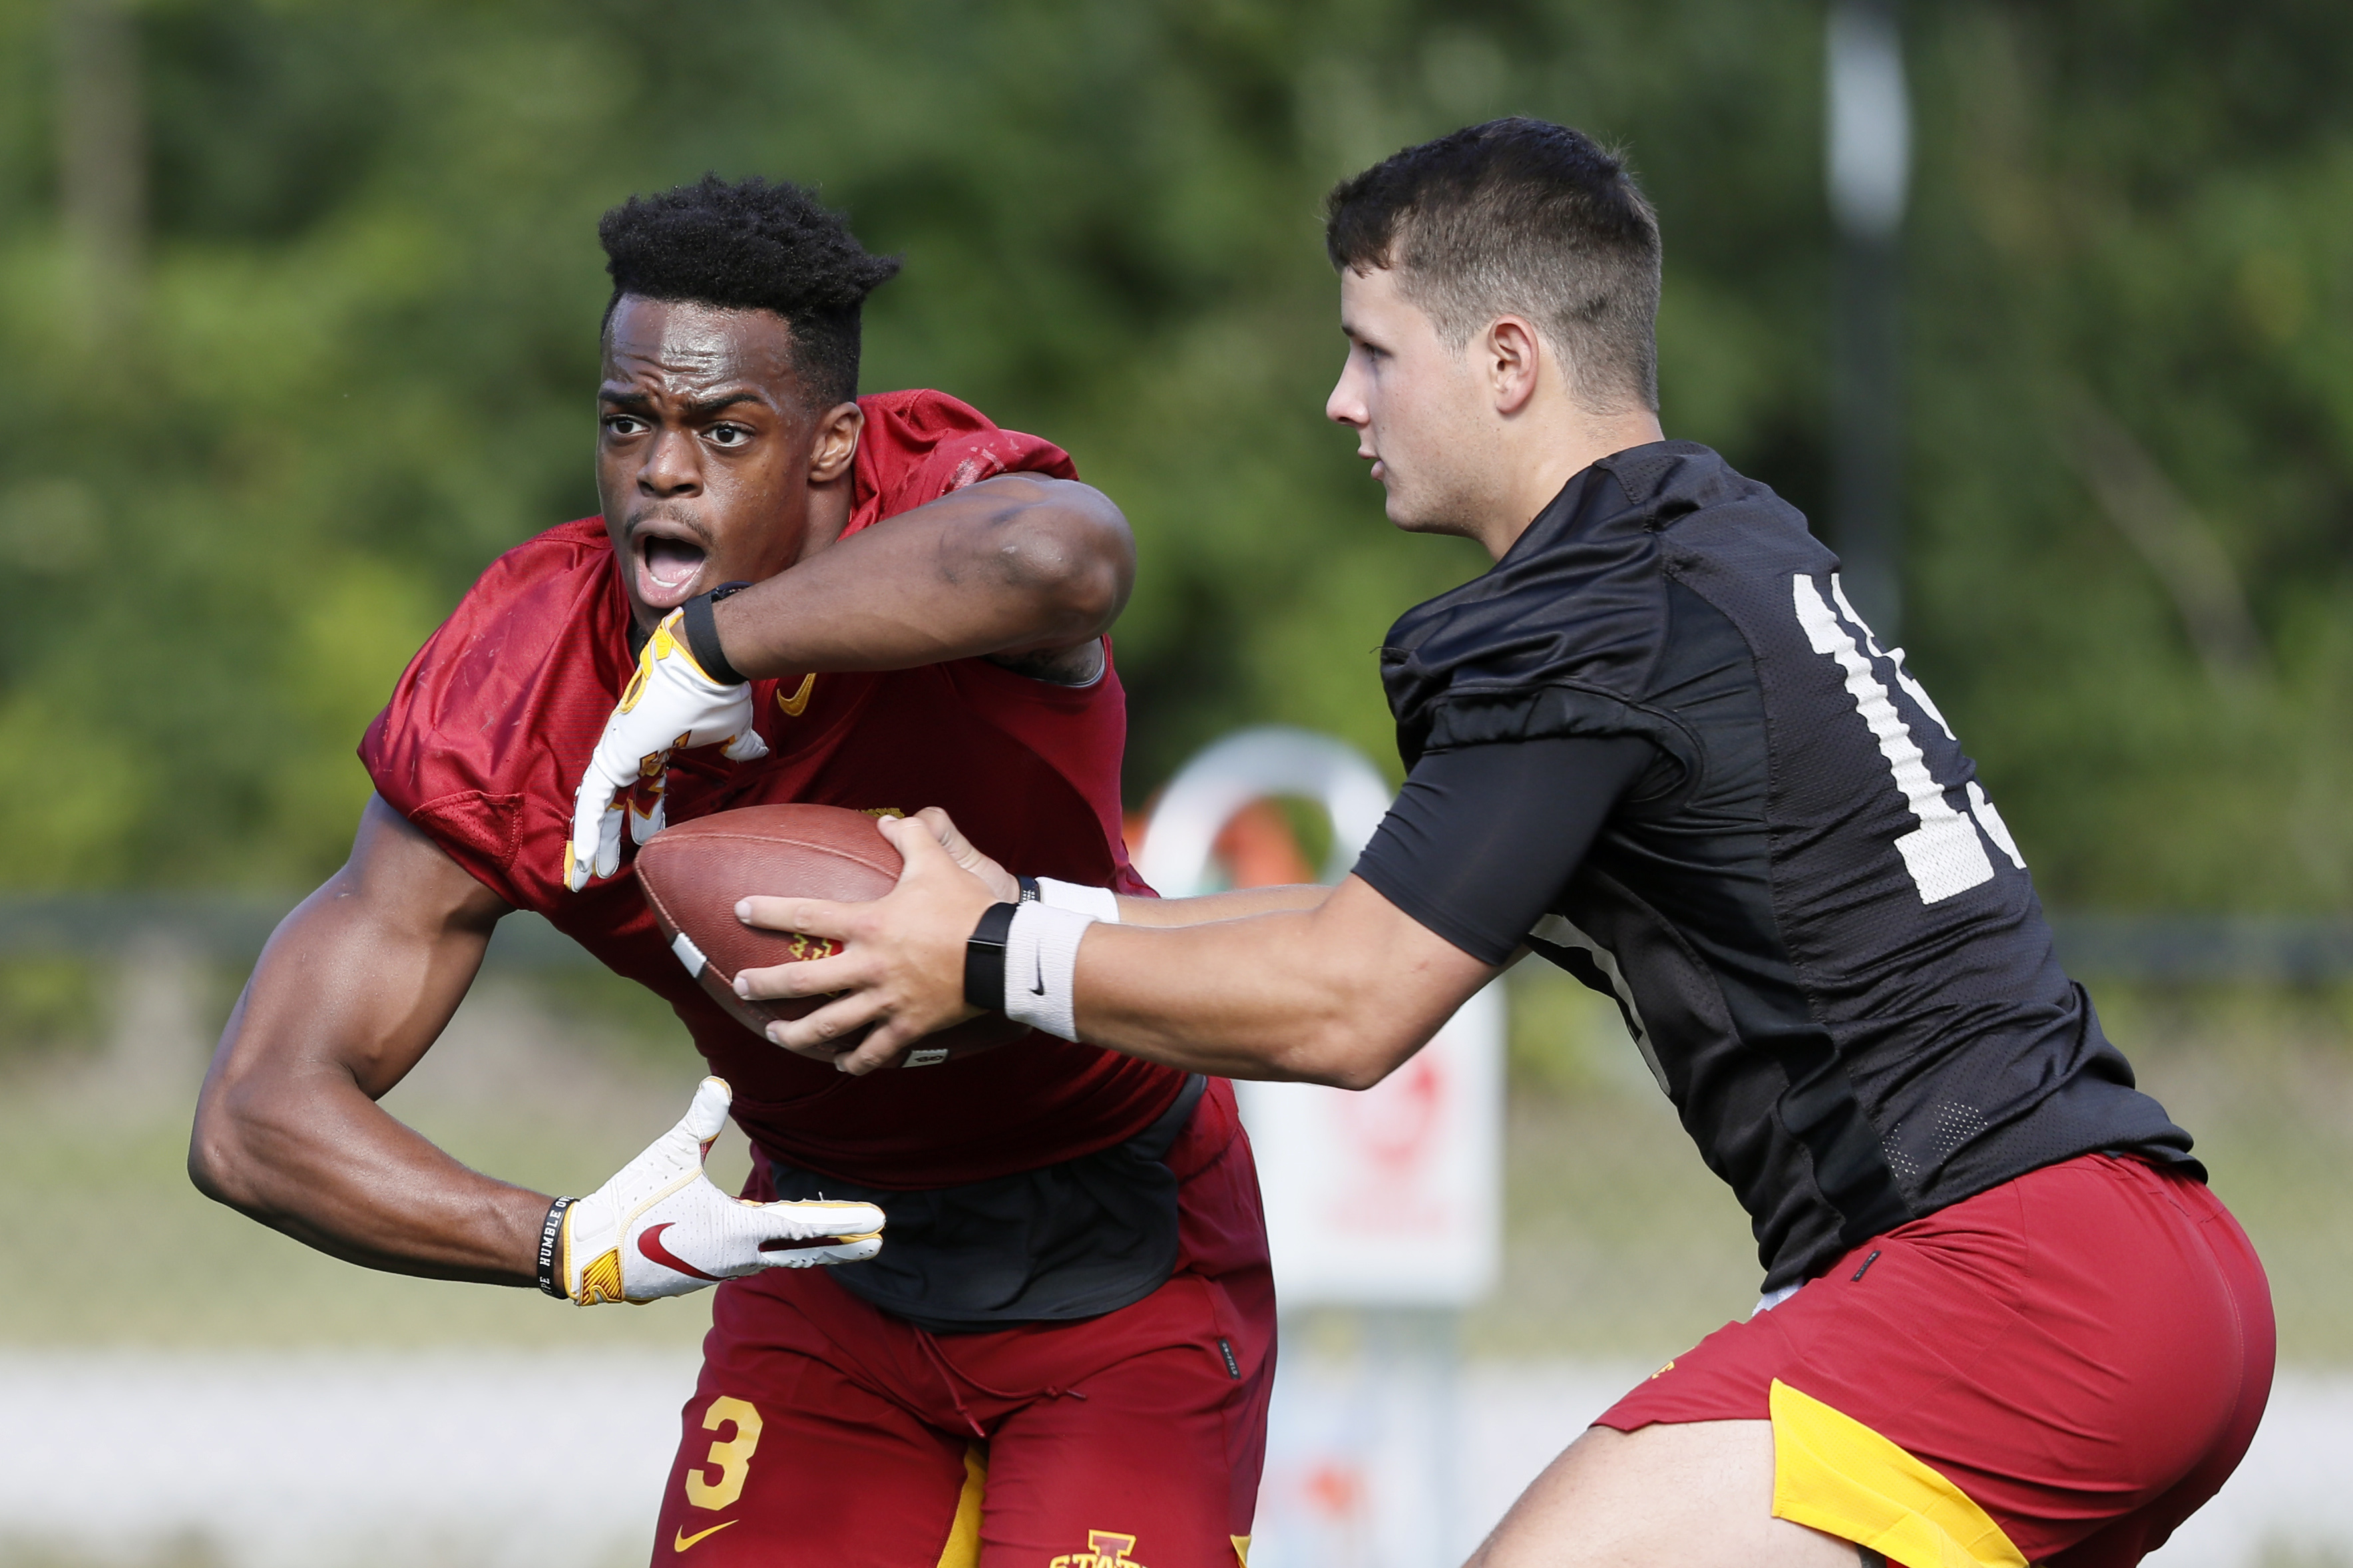 No. 21 Iowa St looks to its offensive line as strength